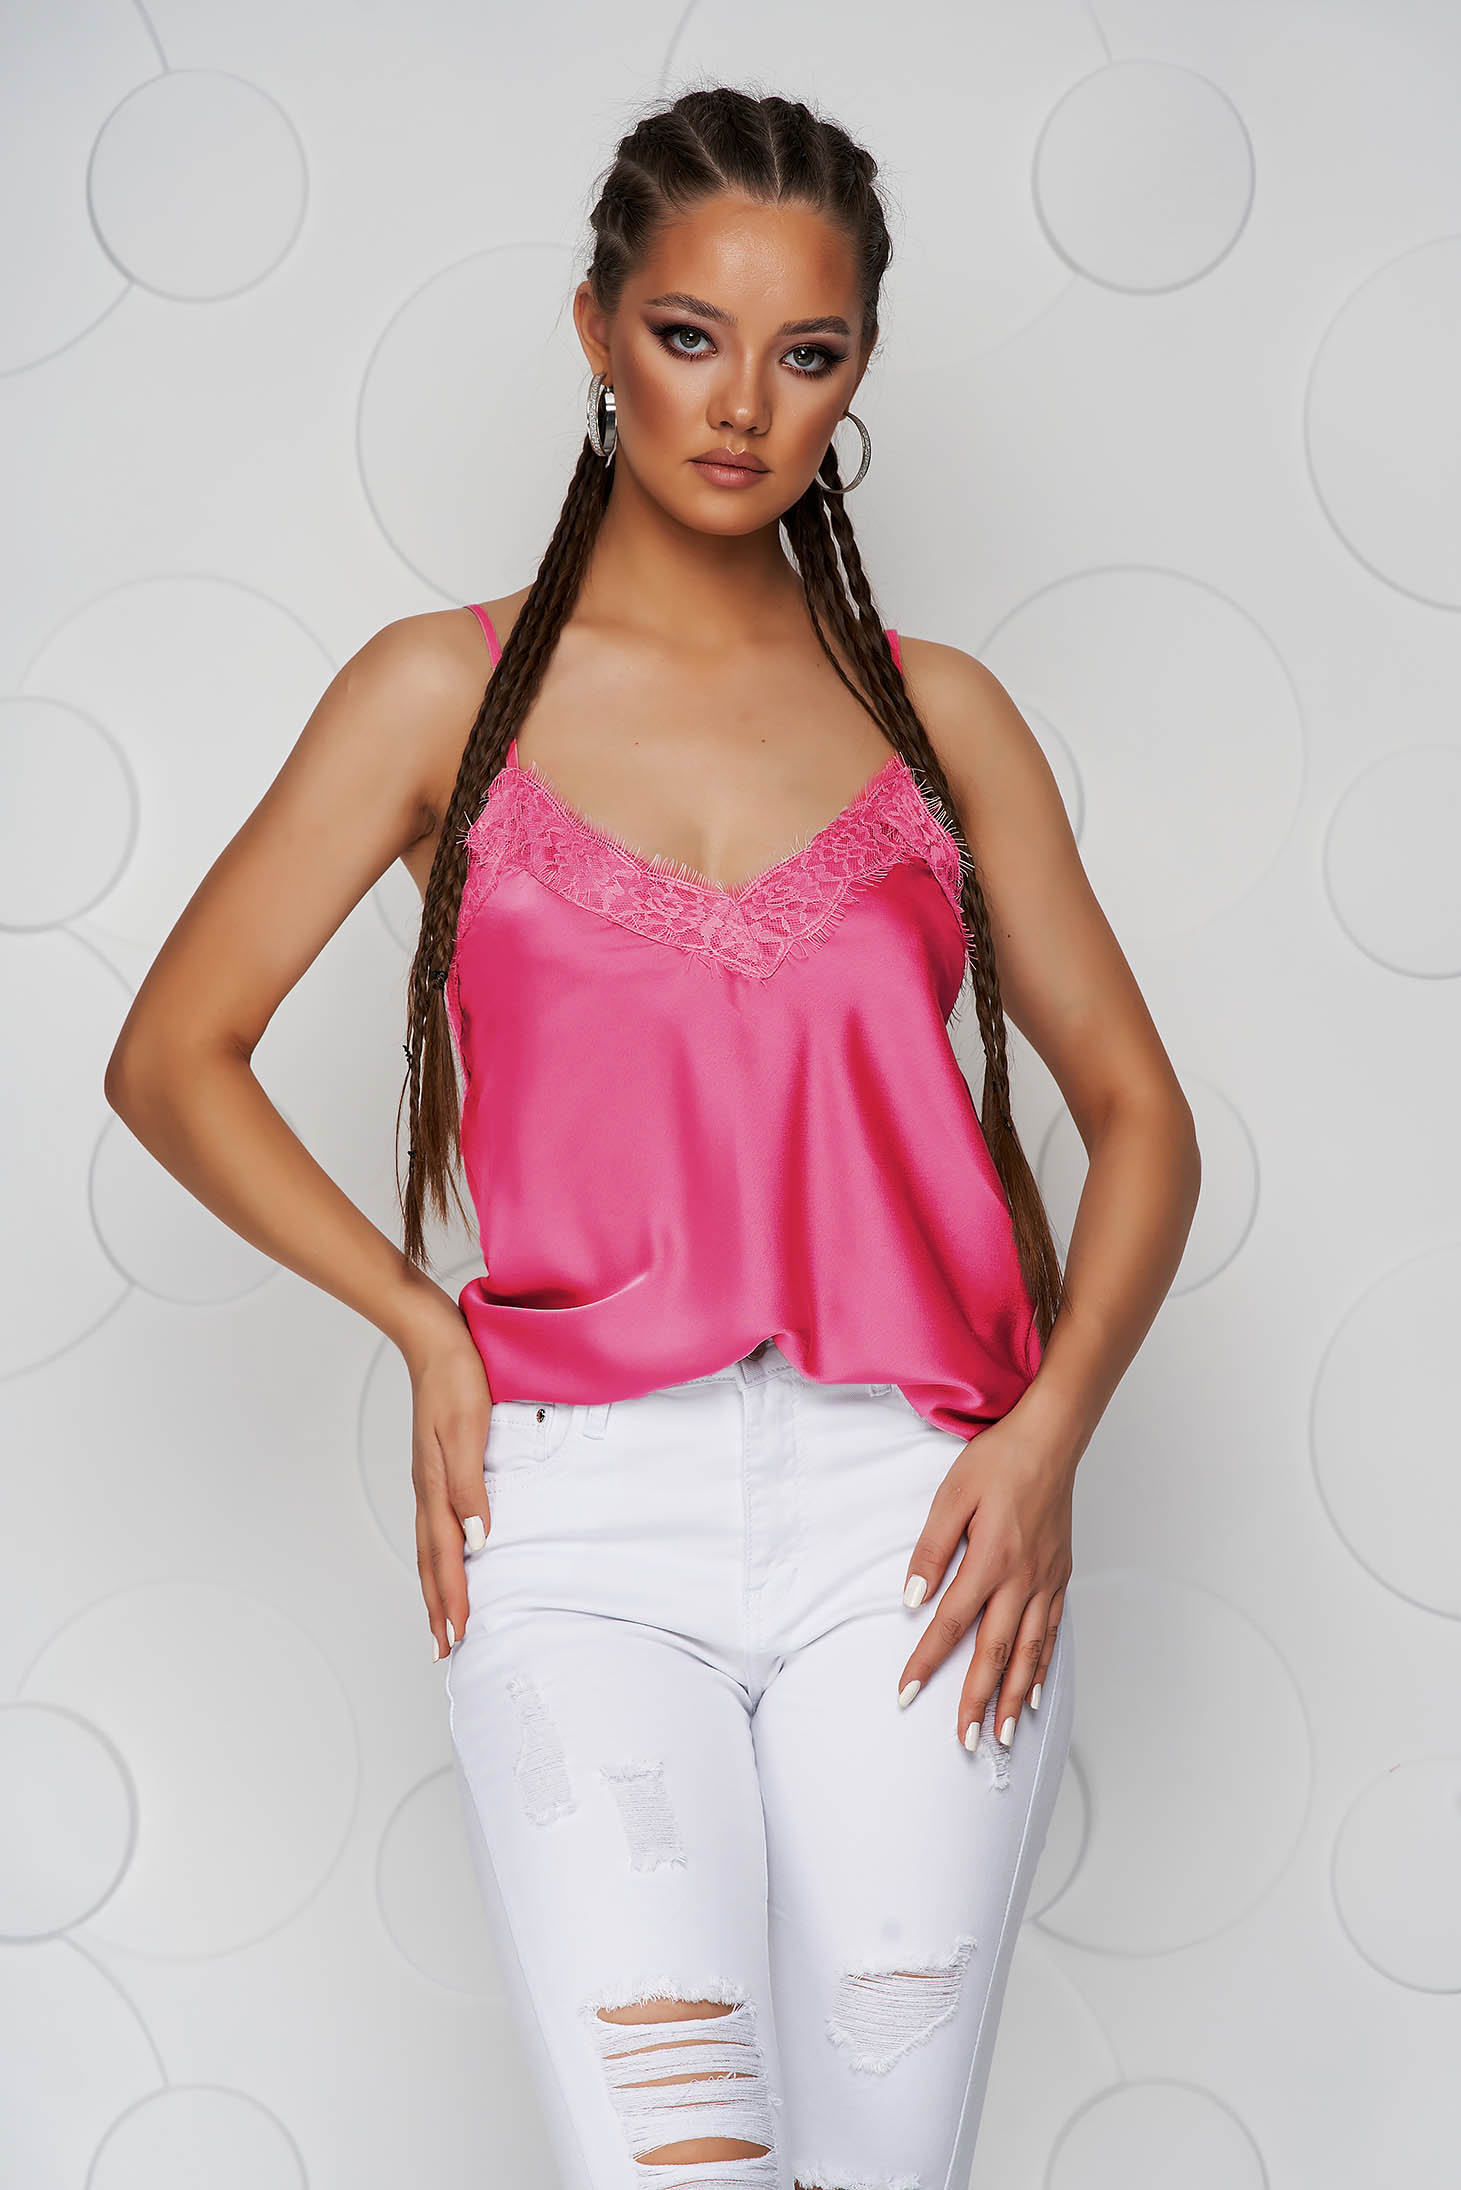 Fuchsia top shirt loose fit from satin with straps with lace details